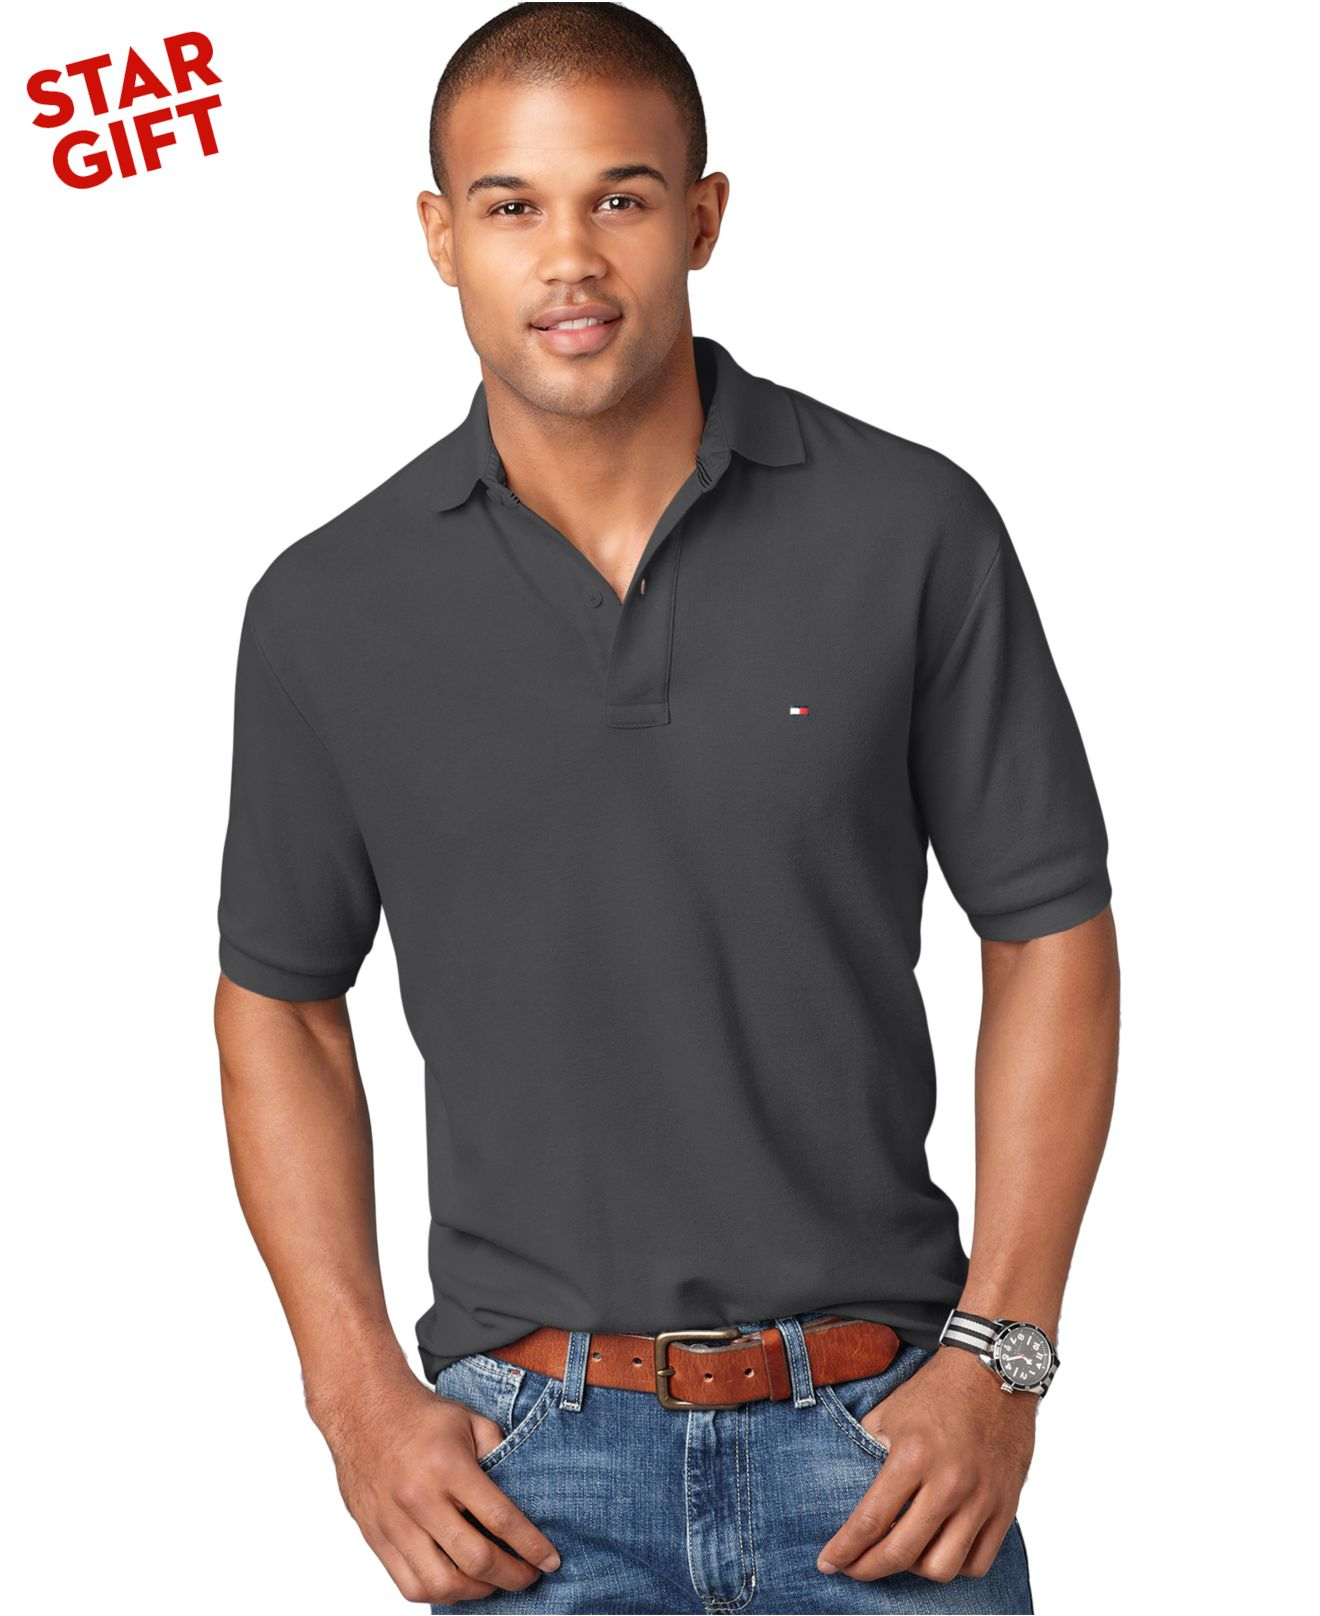 tommy hilfiger classic ivy polo shirt in gray for men lyst. Black Bedroom Furniture Sets. Home Design Ideas